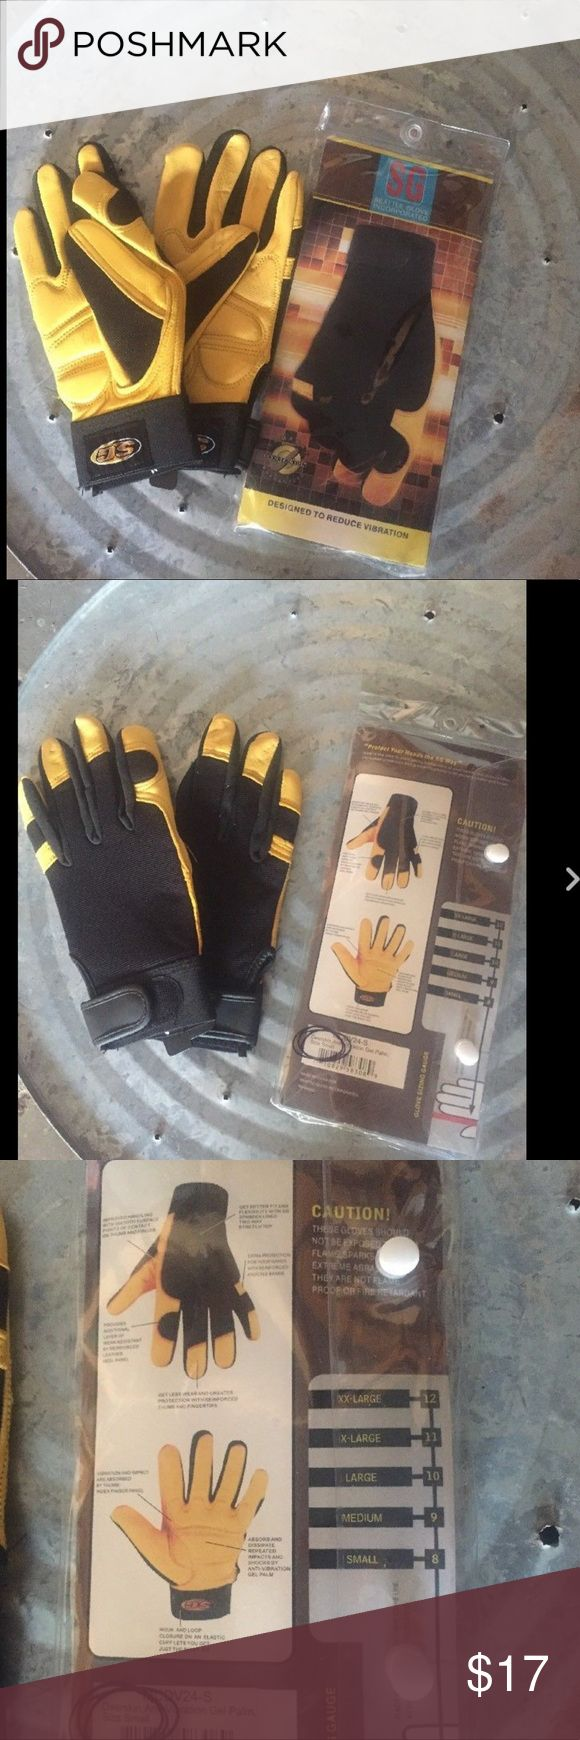 Seattle Inc gloves Anti Vibration Deerskin Gel Seattle Glove Incorporated   Designed to reduce vibration   Size Small   Deerskin   Gel Palm   Brand New! Perfect as a work glove or for any sport that vibrates your hands. Would make a great gift! Seattle Inc Accessories Gloves & Mittens